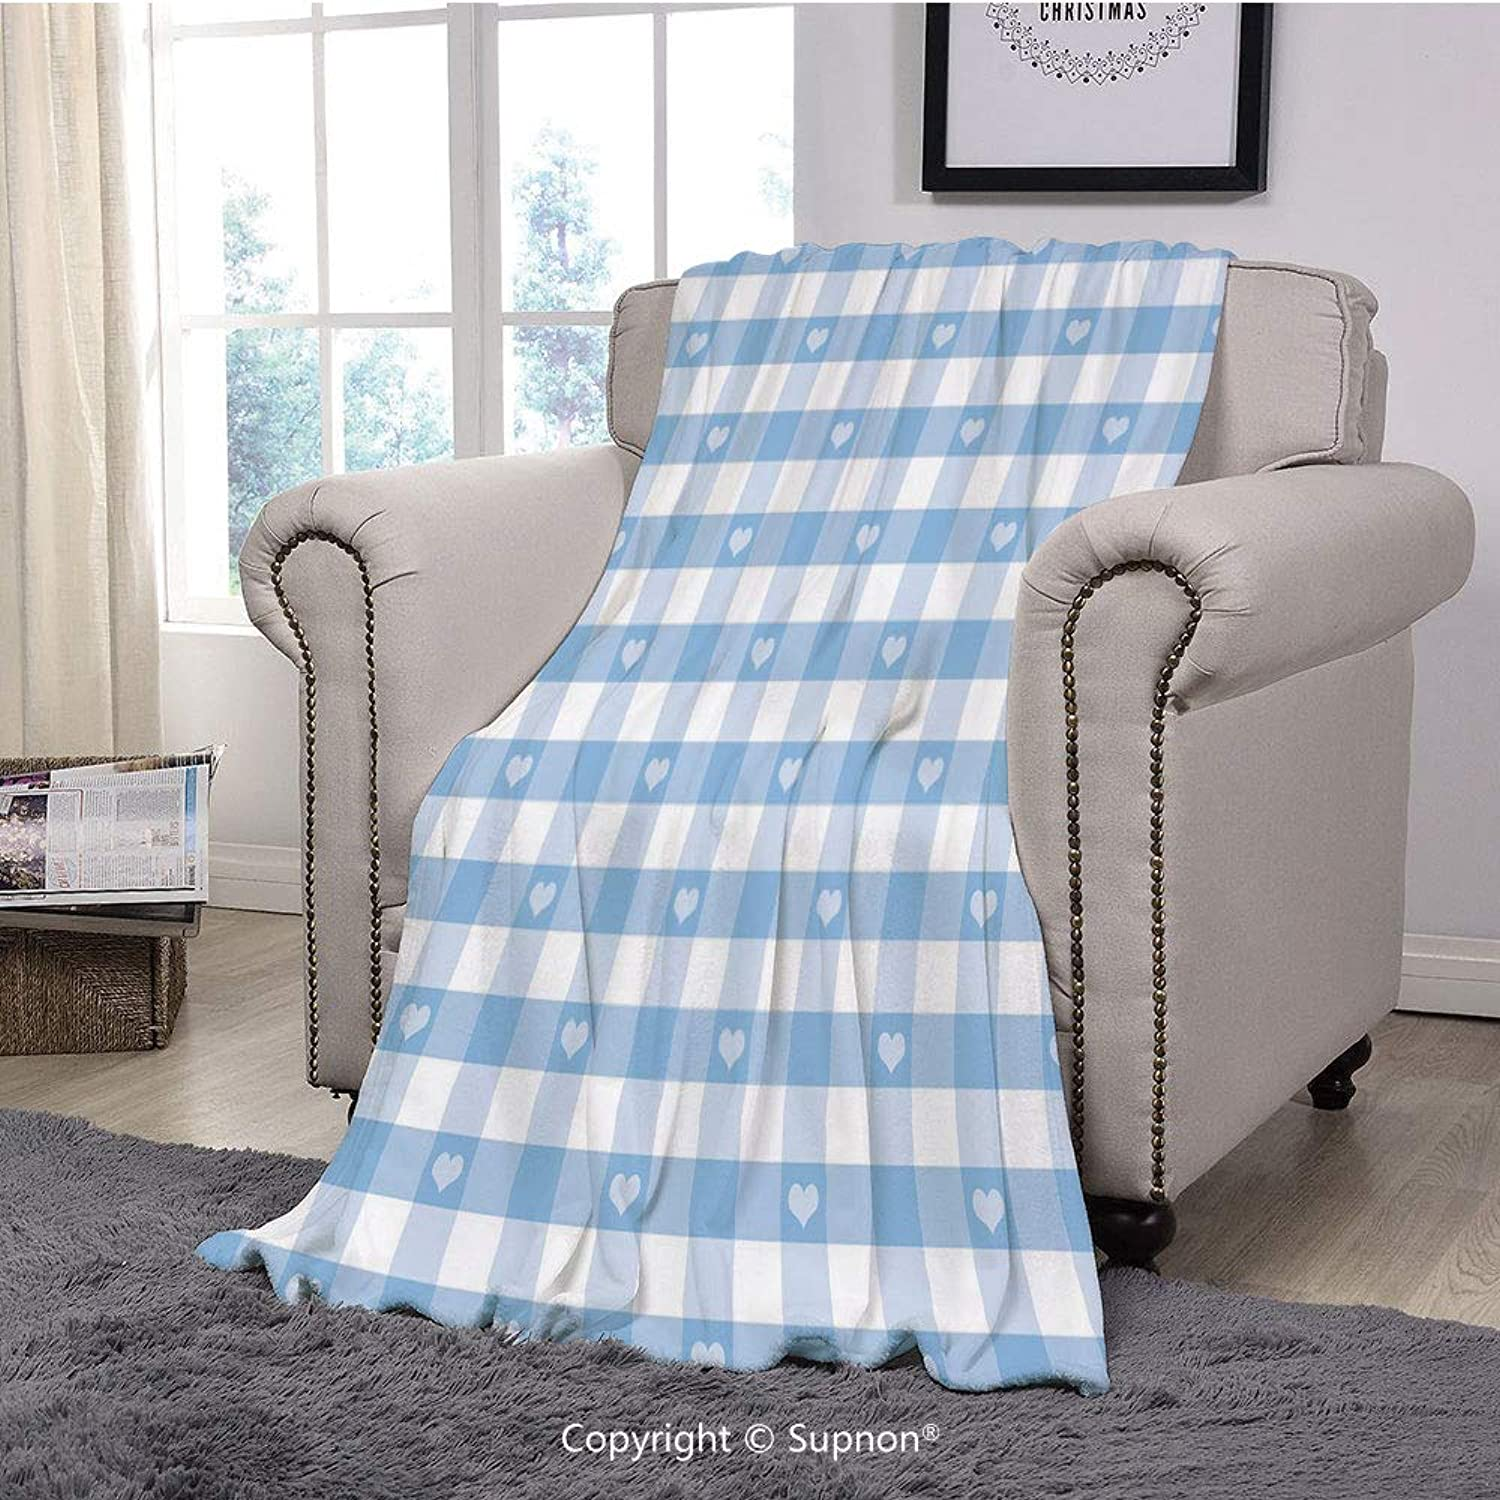 Throw Blanket Super Soft Fuzzy Light Blanket,Checkered,Gingham Motif with Cute Little Hearts Pastel bluee Baby Shower Kids Theme,Light bluee White(51  x 51 )